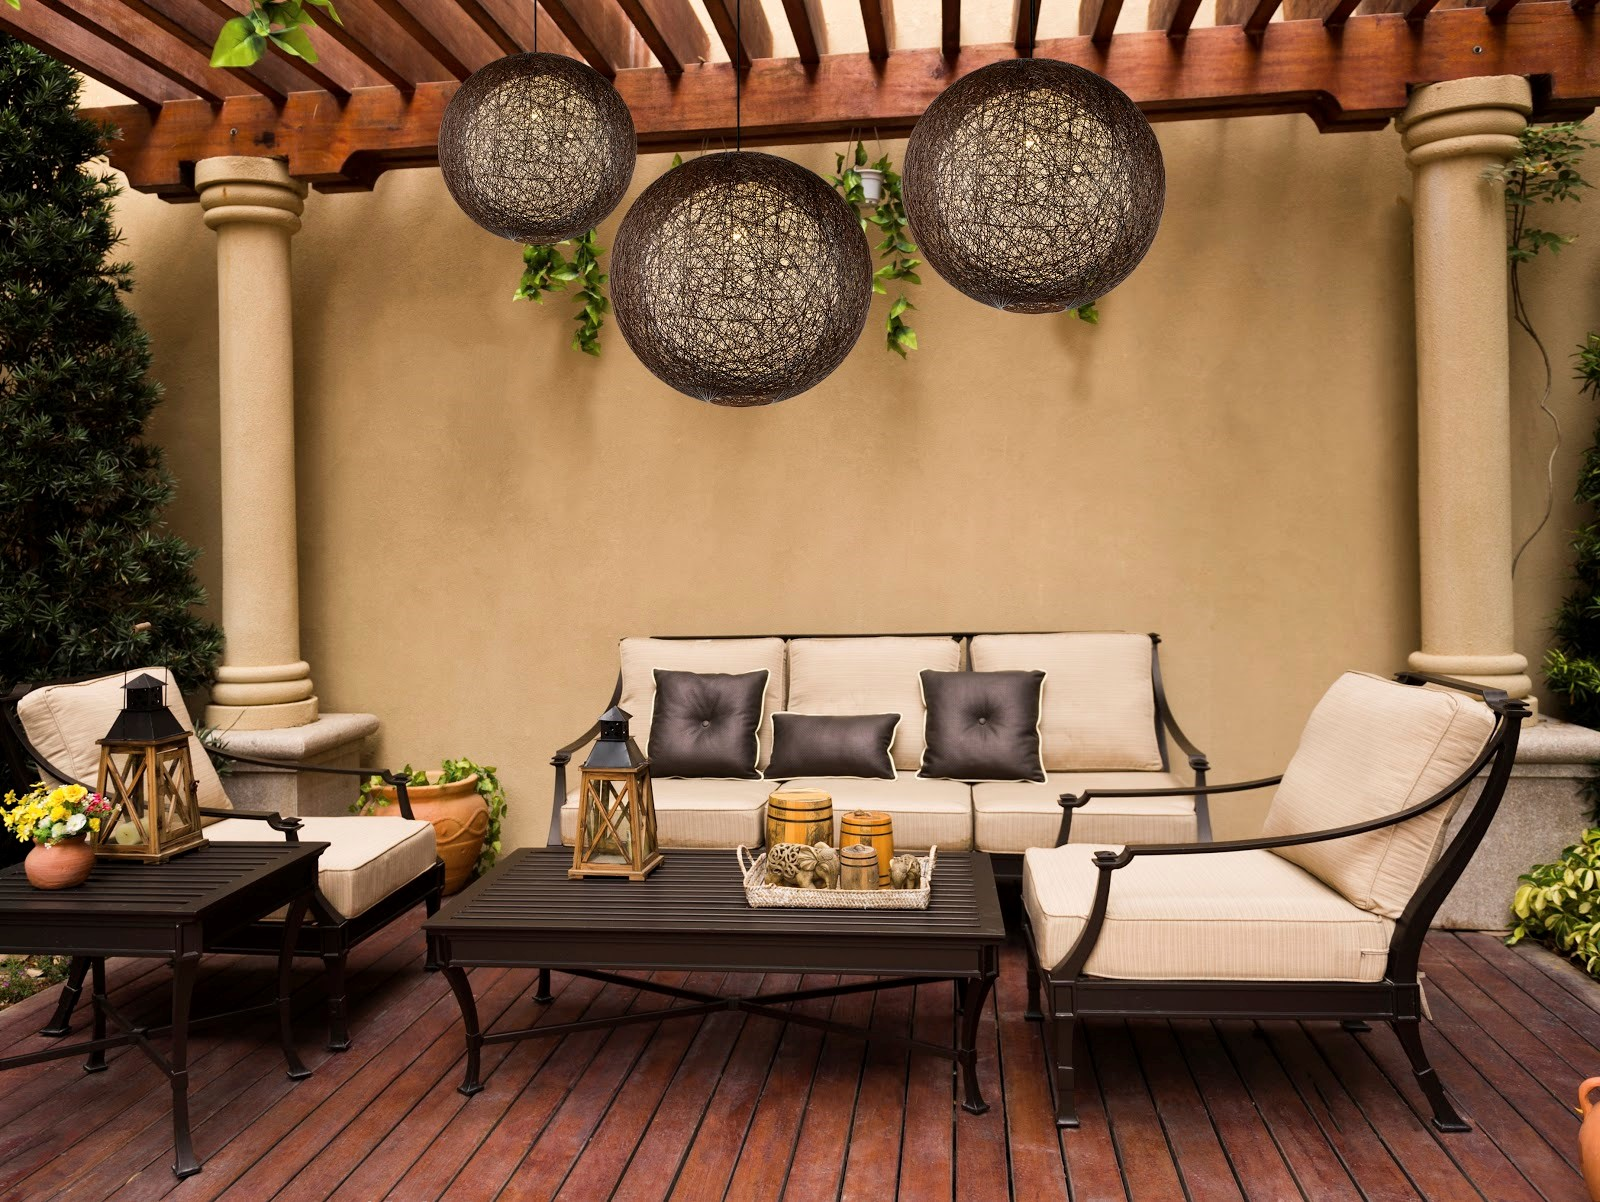 3 Best Lighting Fixtures to Illuminate Your Patio or Space outdoor